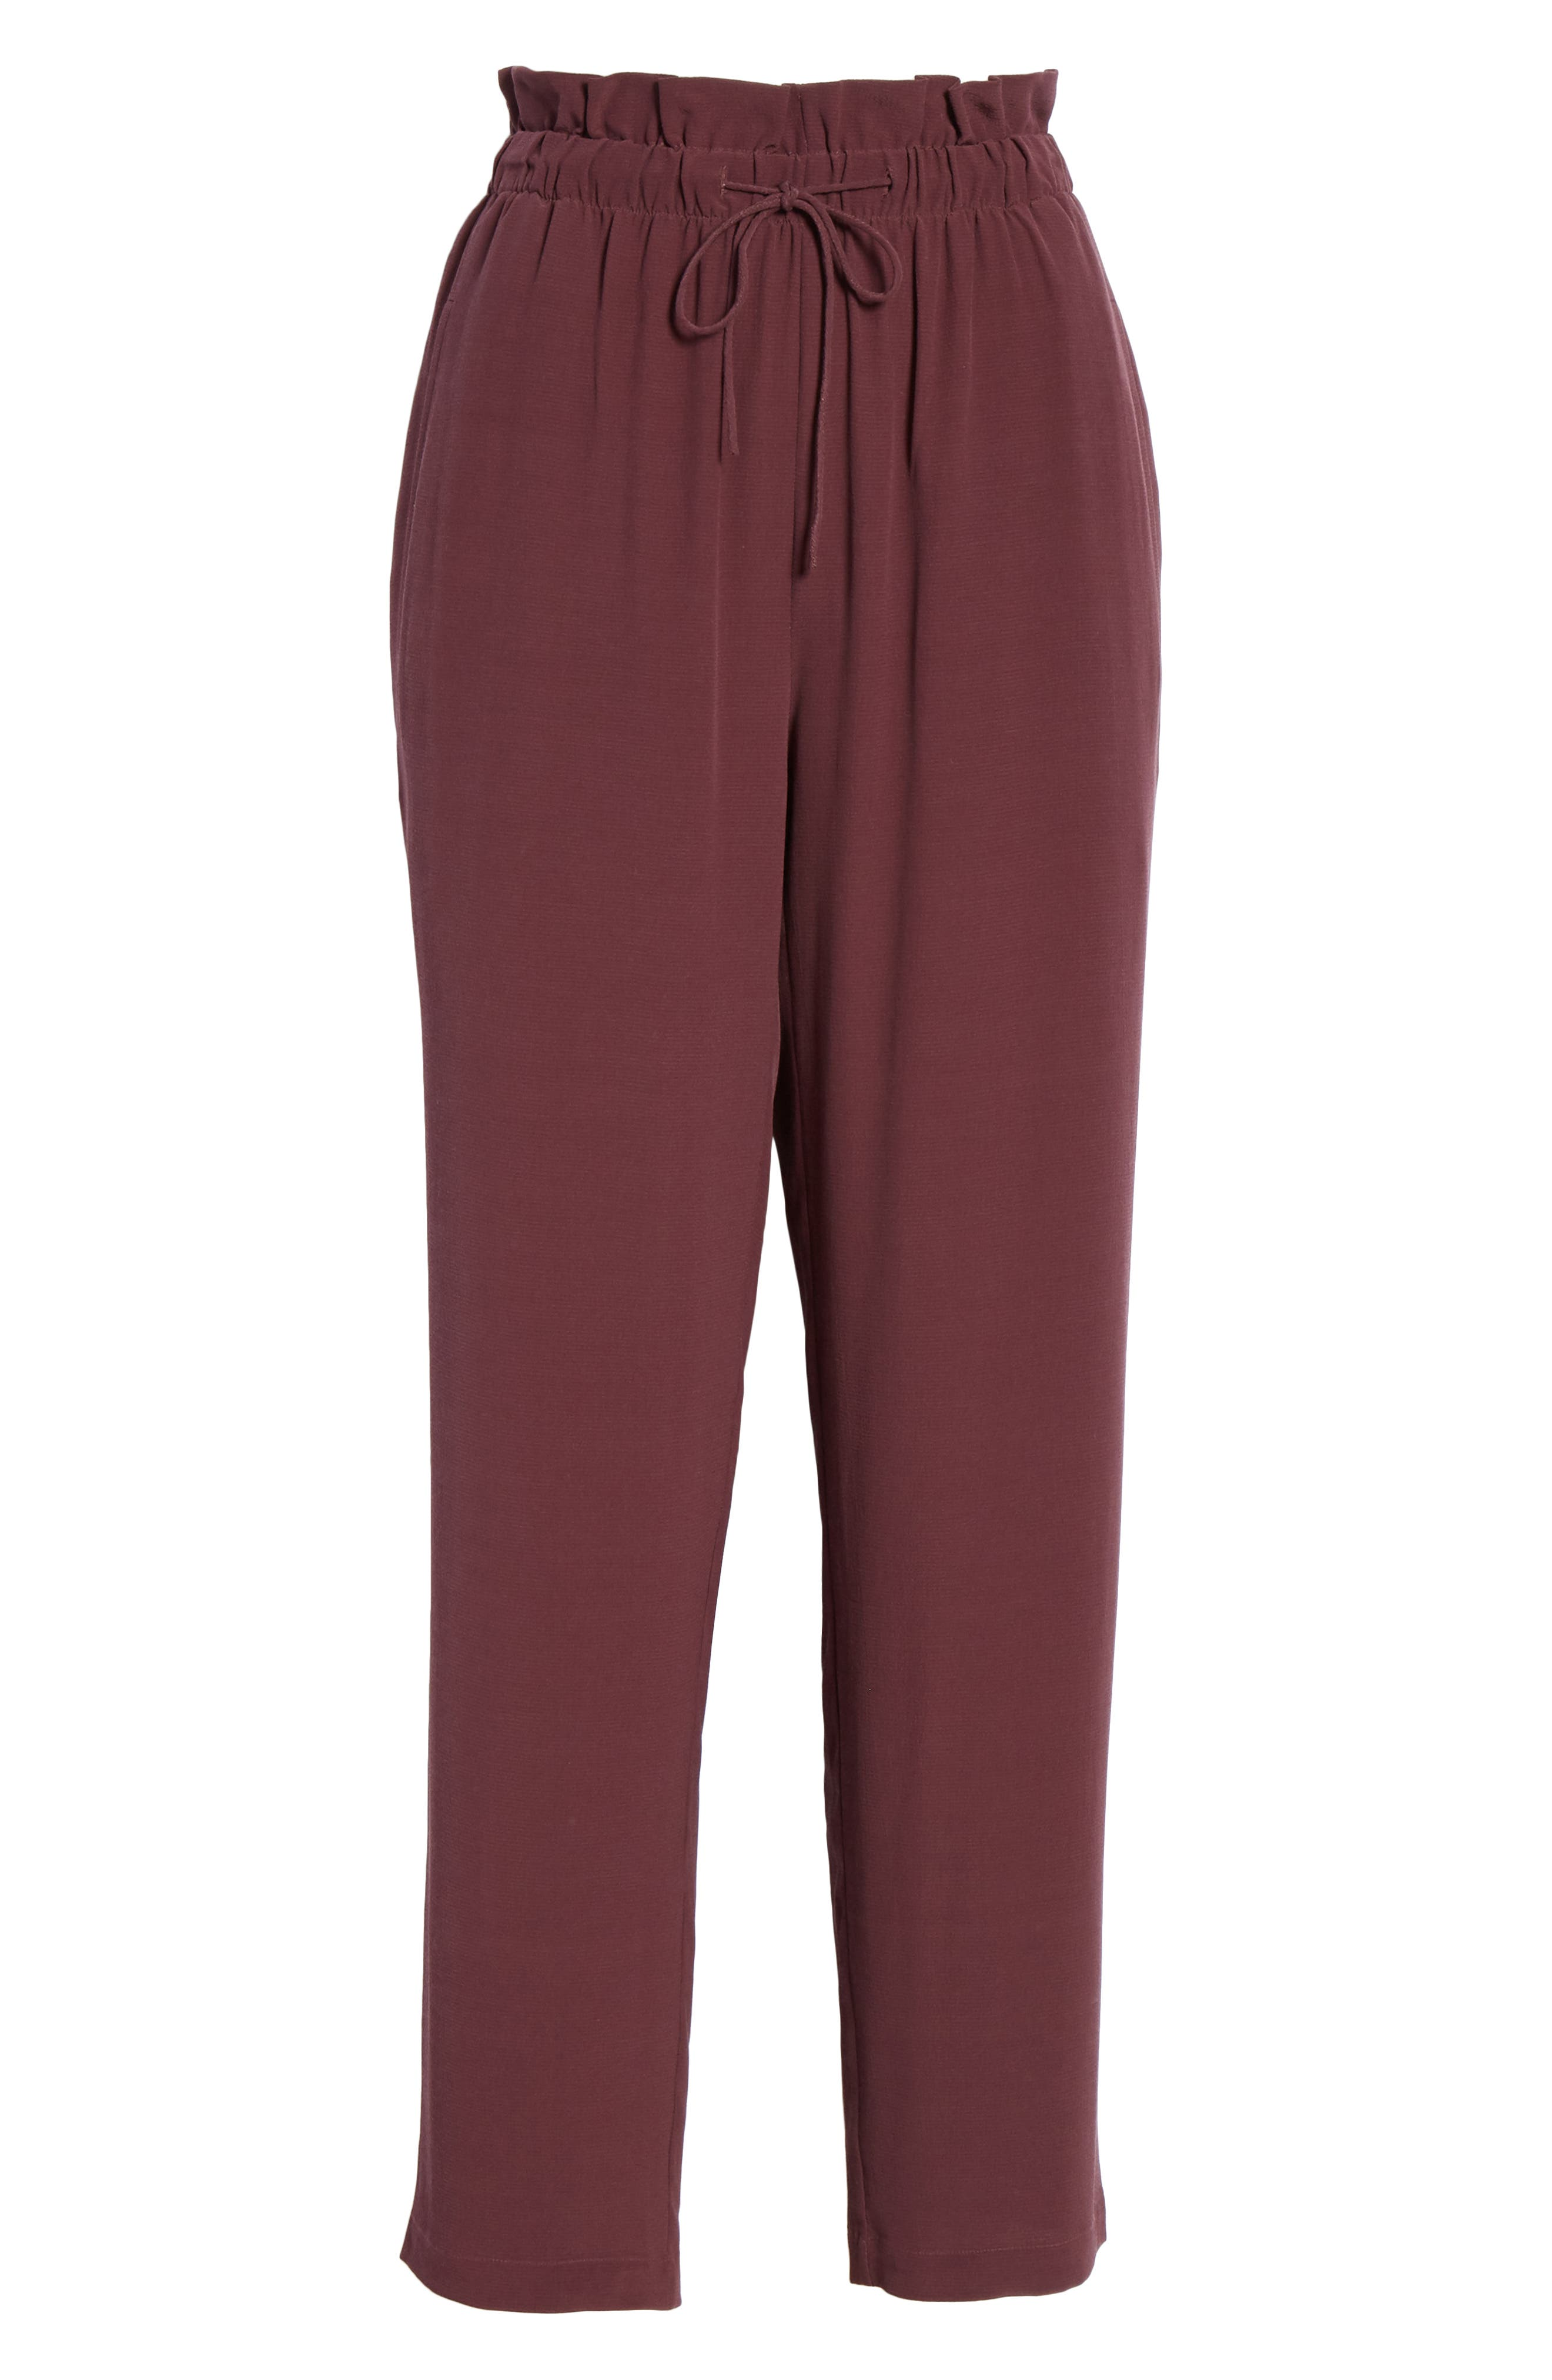 EILEEN FISHER, Crepe Pants, Alternate thumbnail 7, color, CASSIS